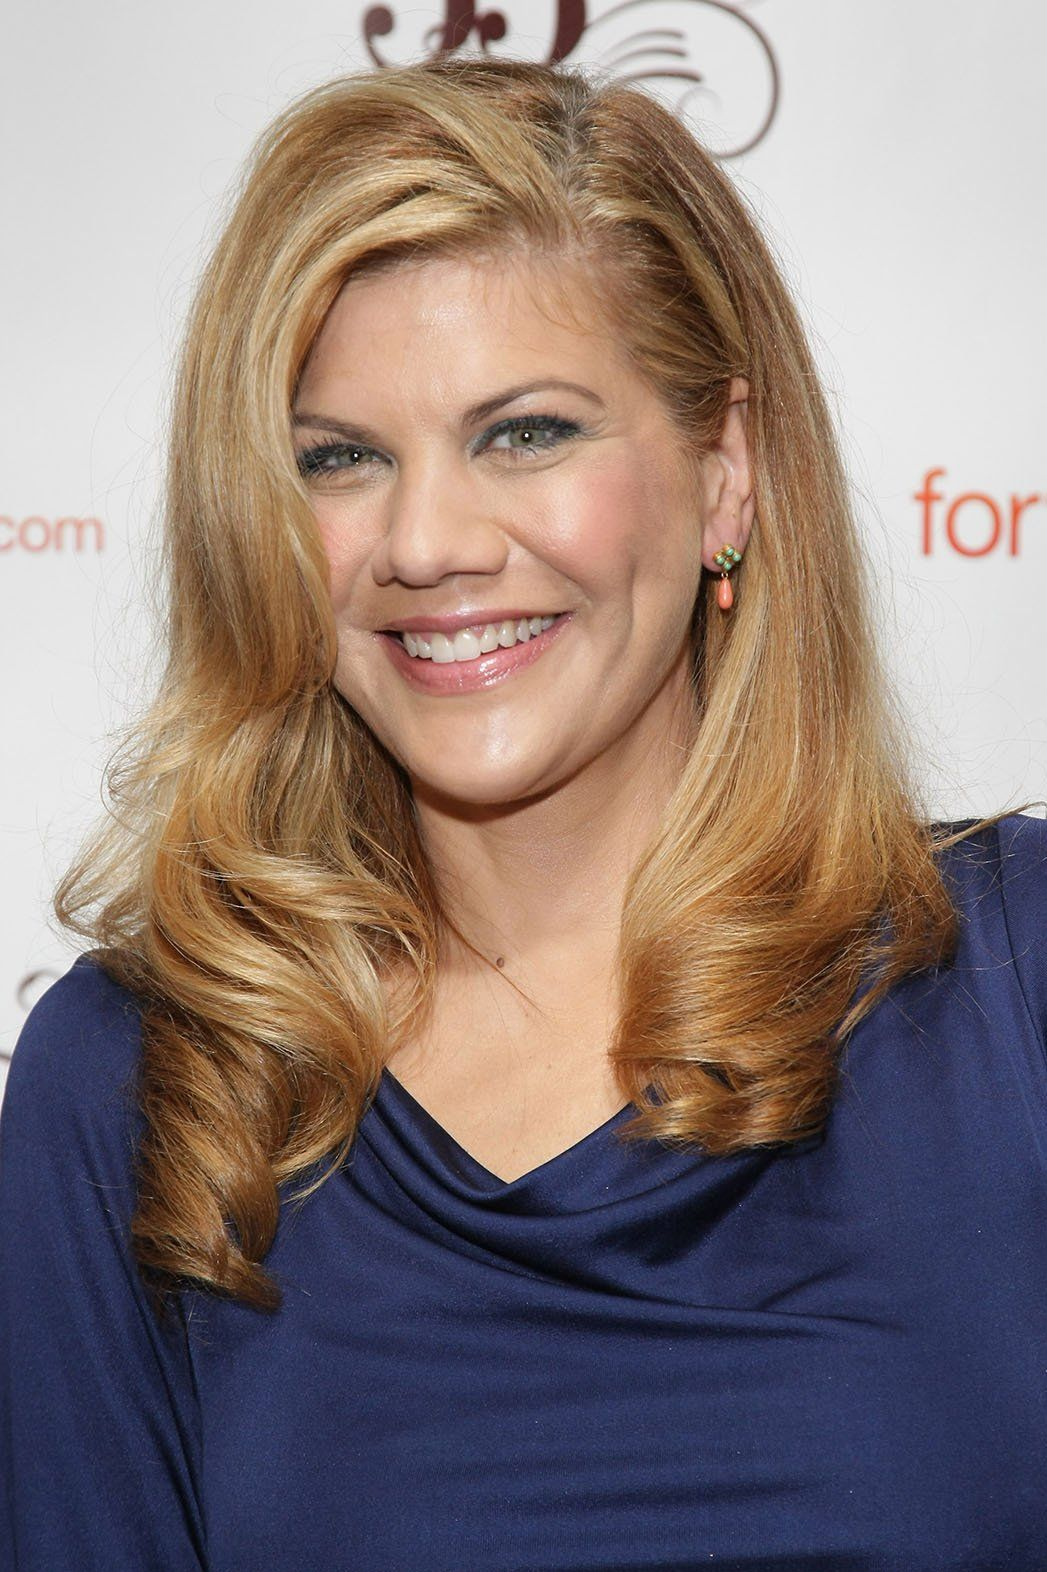 kristen johnston wiki